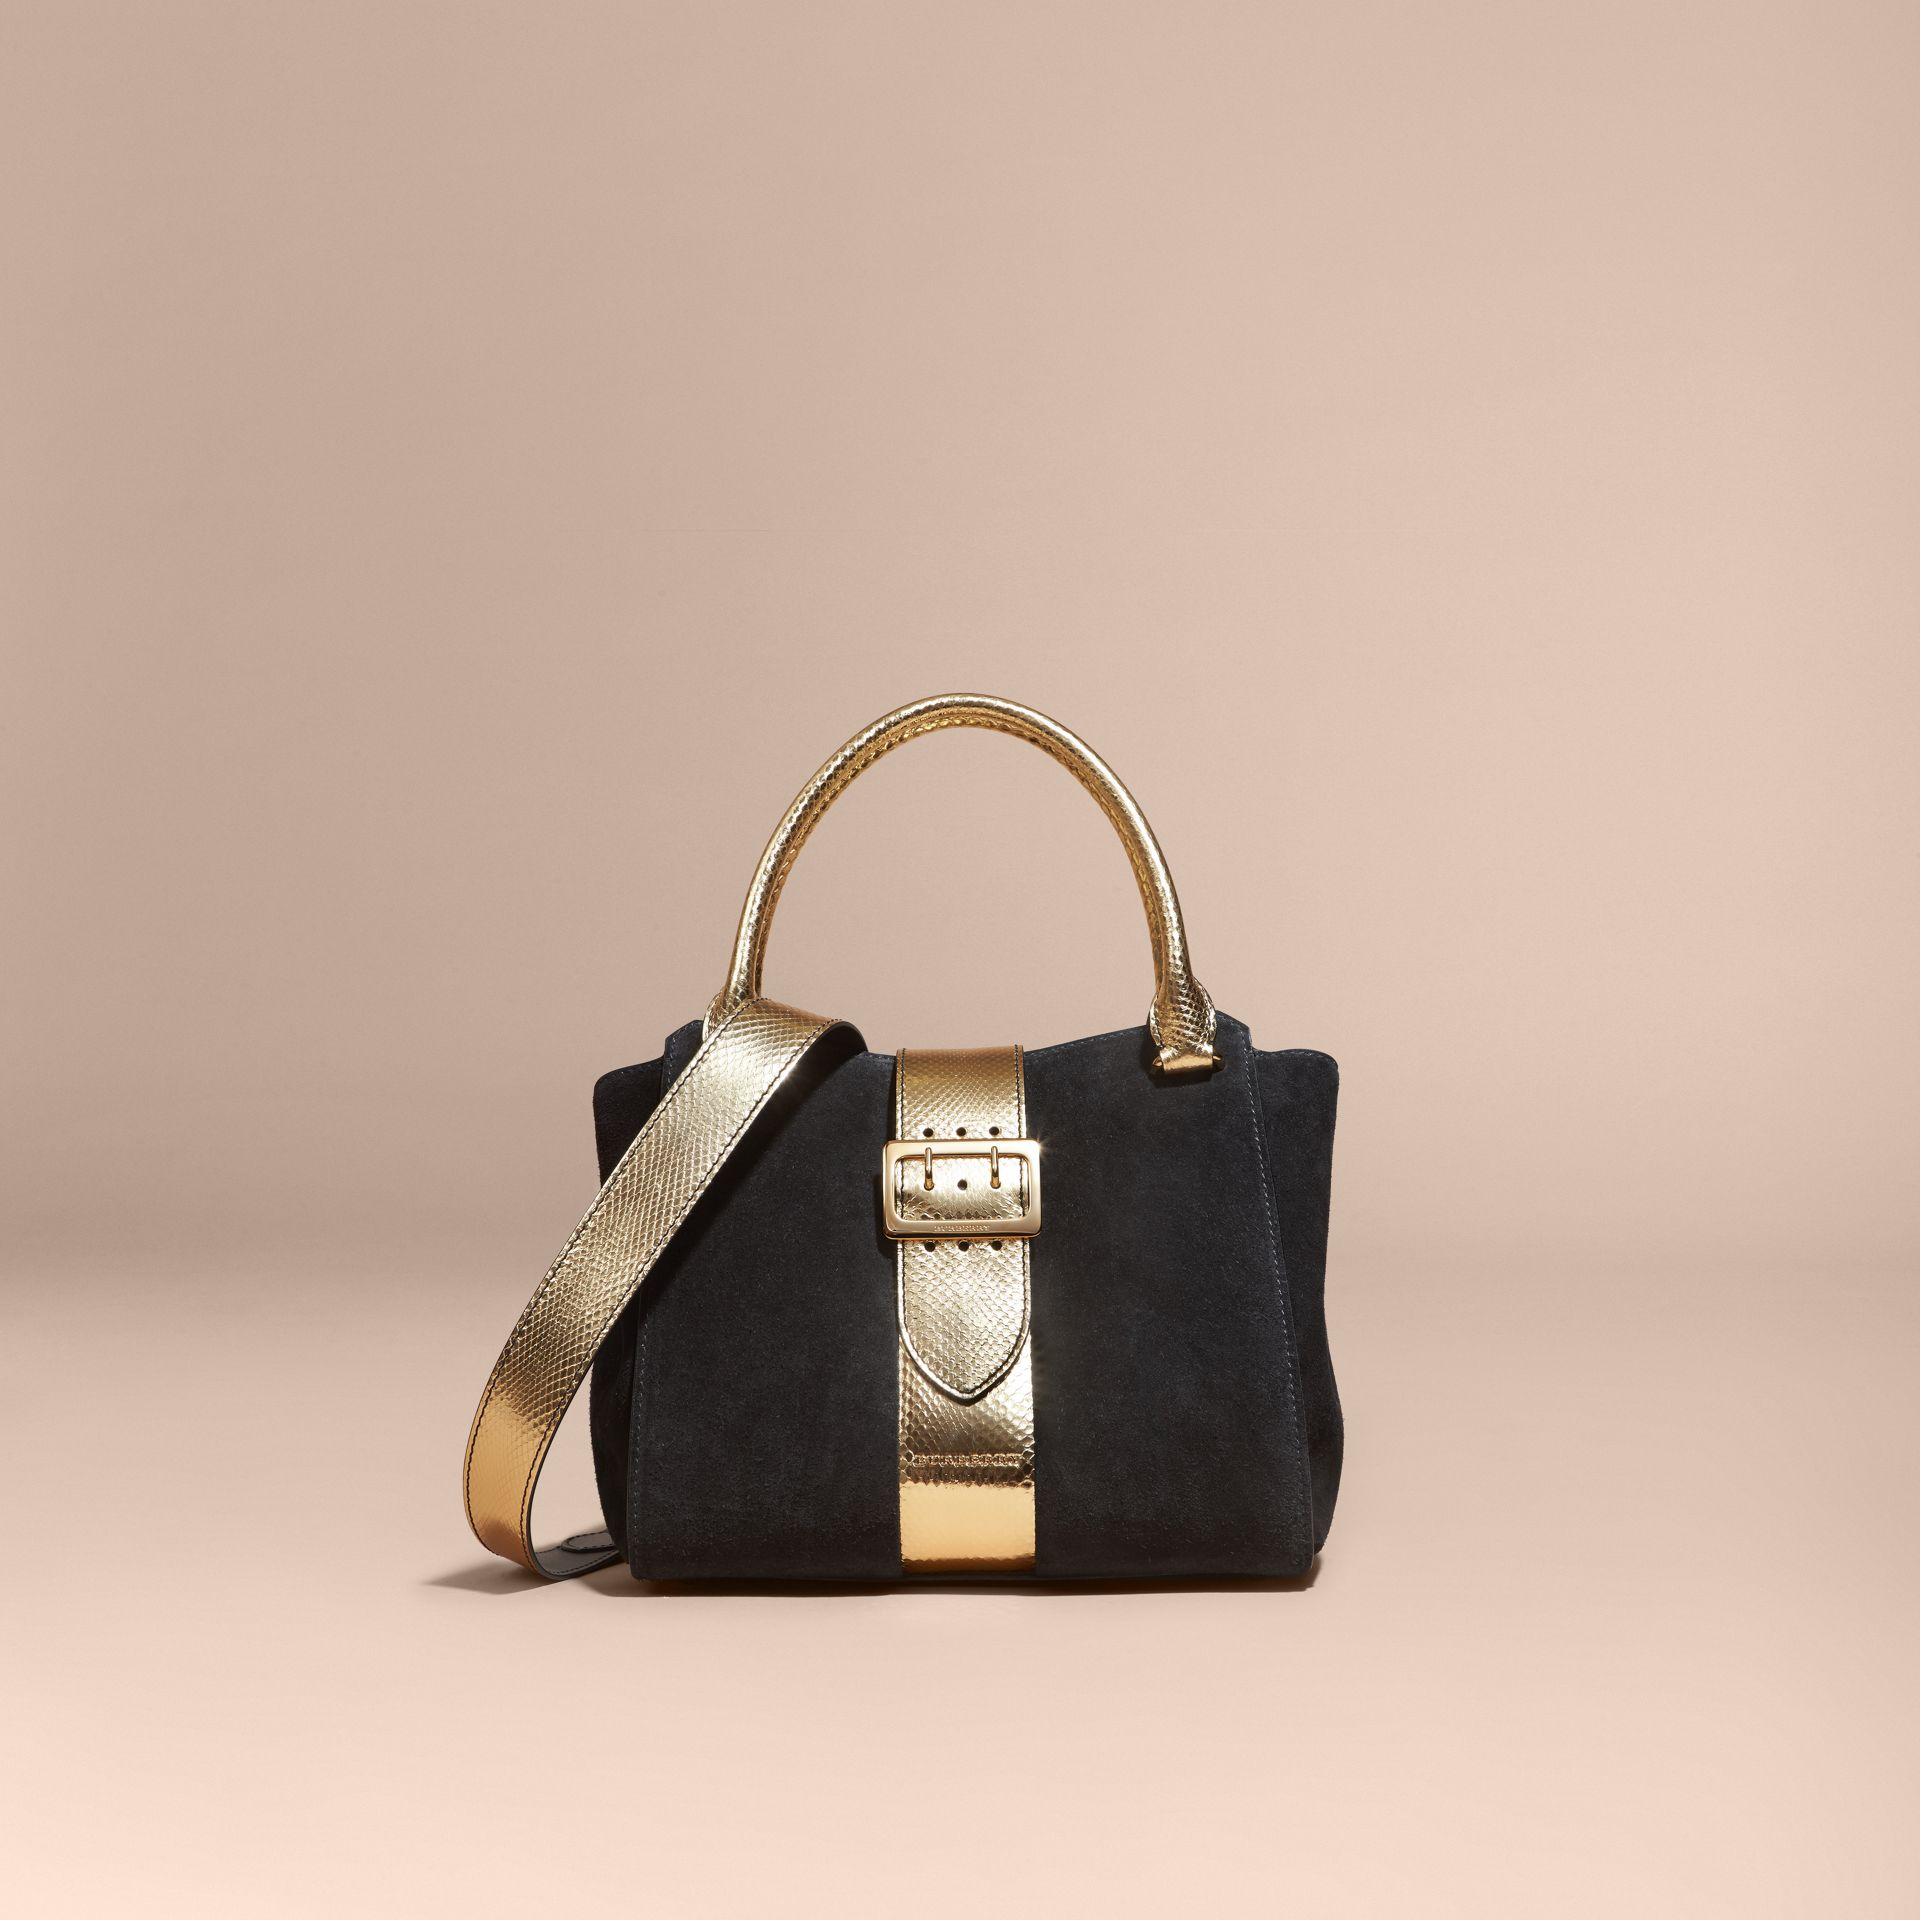 Black/gold The Medium Buckle Tote in Suede and Snakeskin - gallery image 8